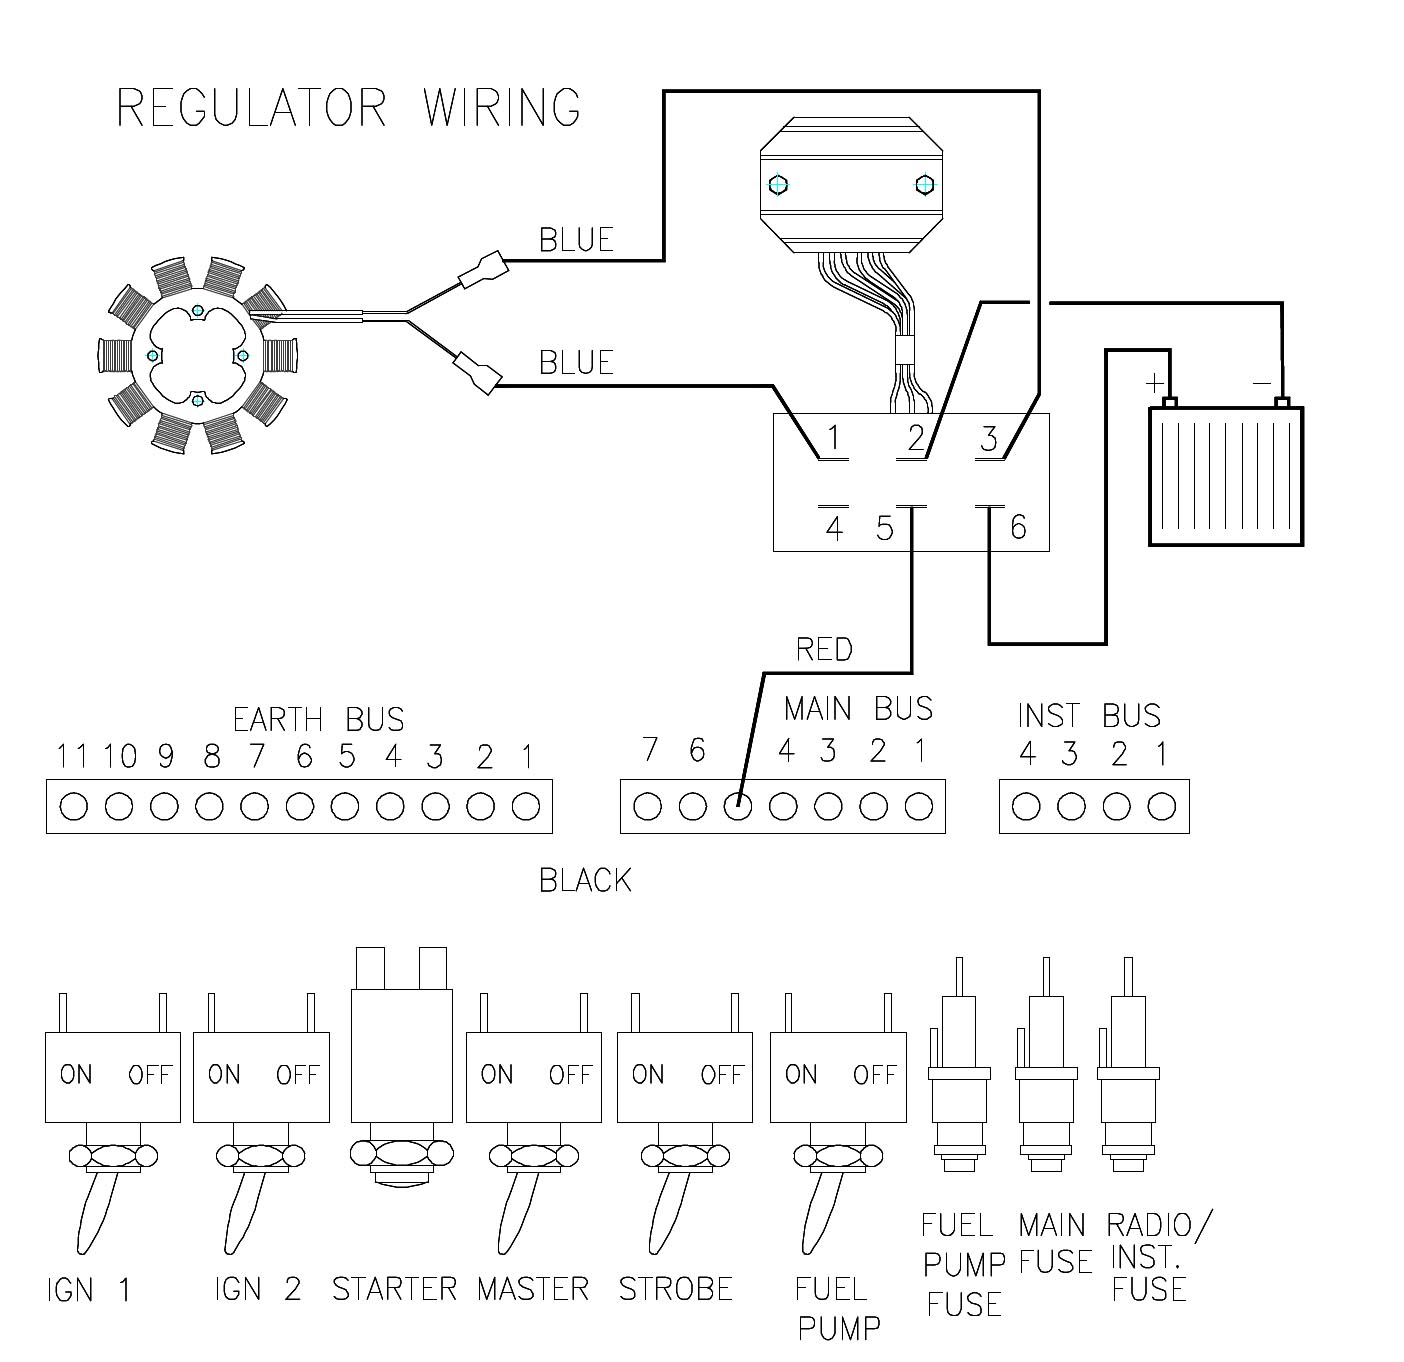 Wiring diagram cessna 12 volt alternator readingrat aeroelectric list digest sun 072008wiring diagramwiring diagram asfbconference2016 Gallery